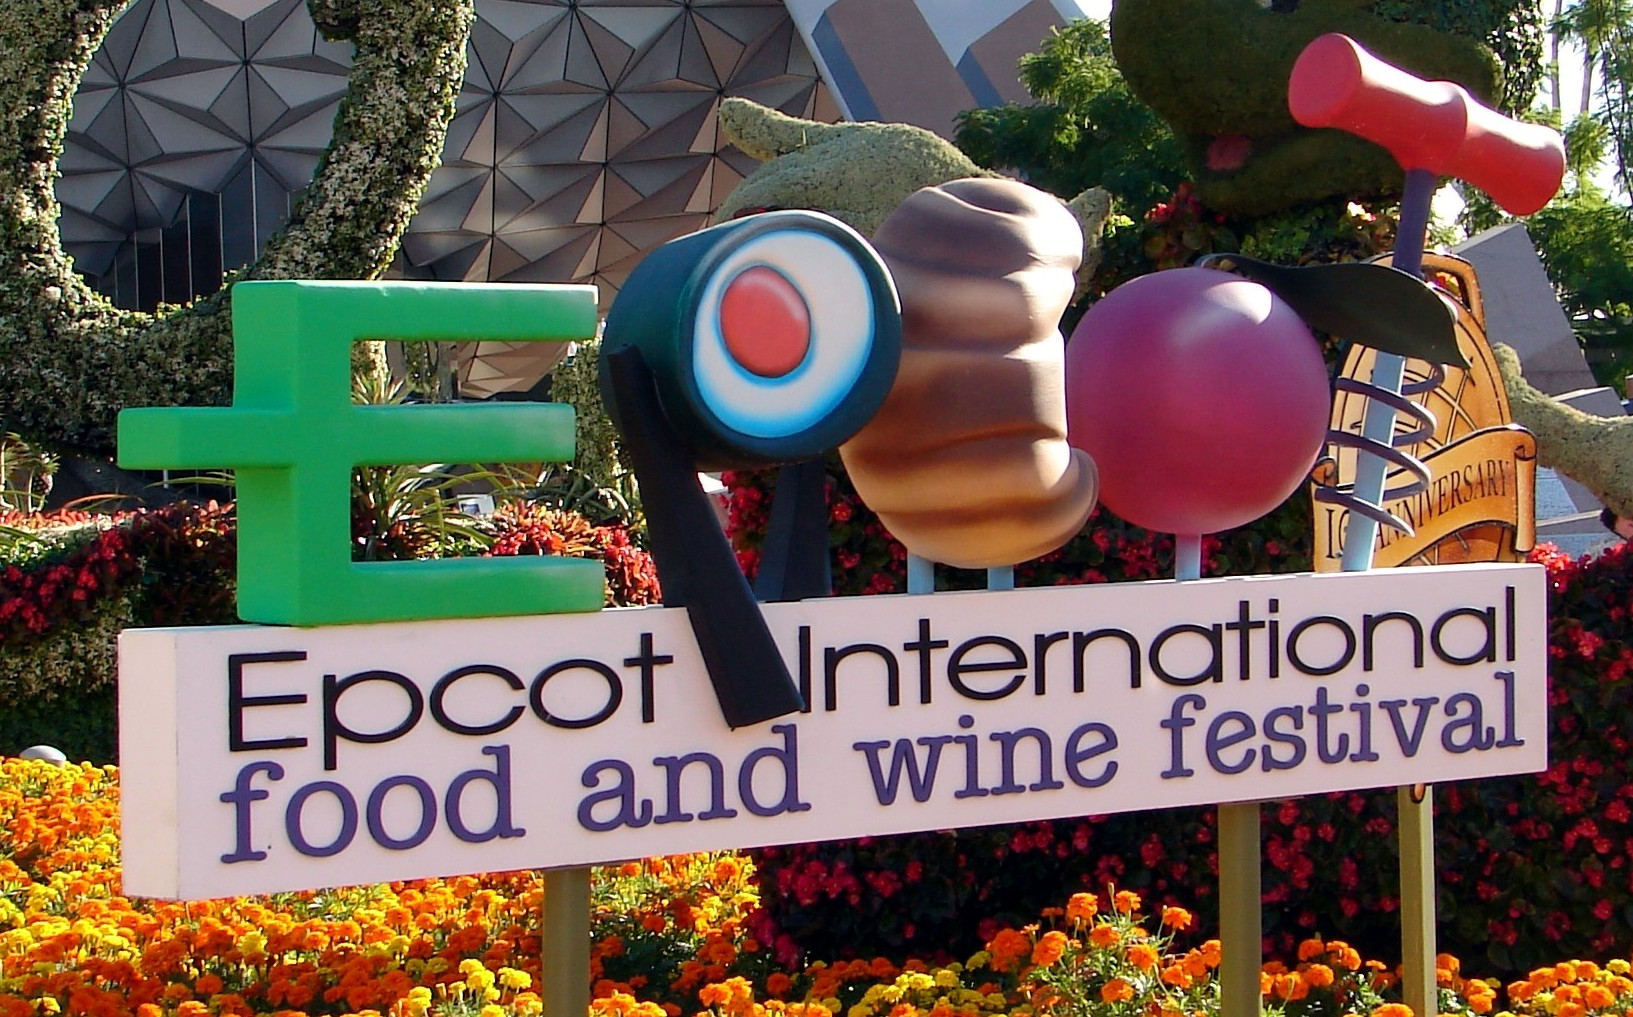 Can't wait to experience the Food and Wine Festival! Photo Credit: An Open Suitcase